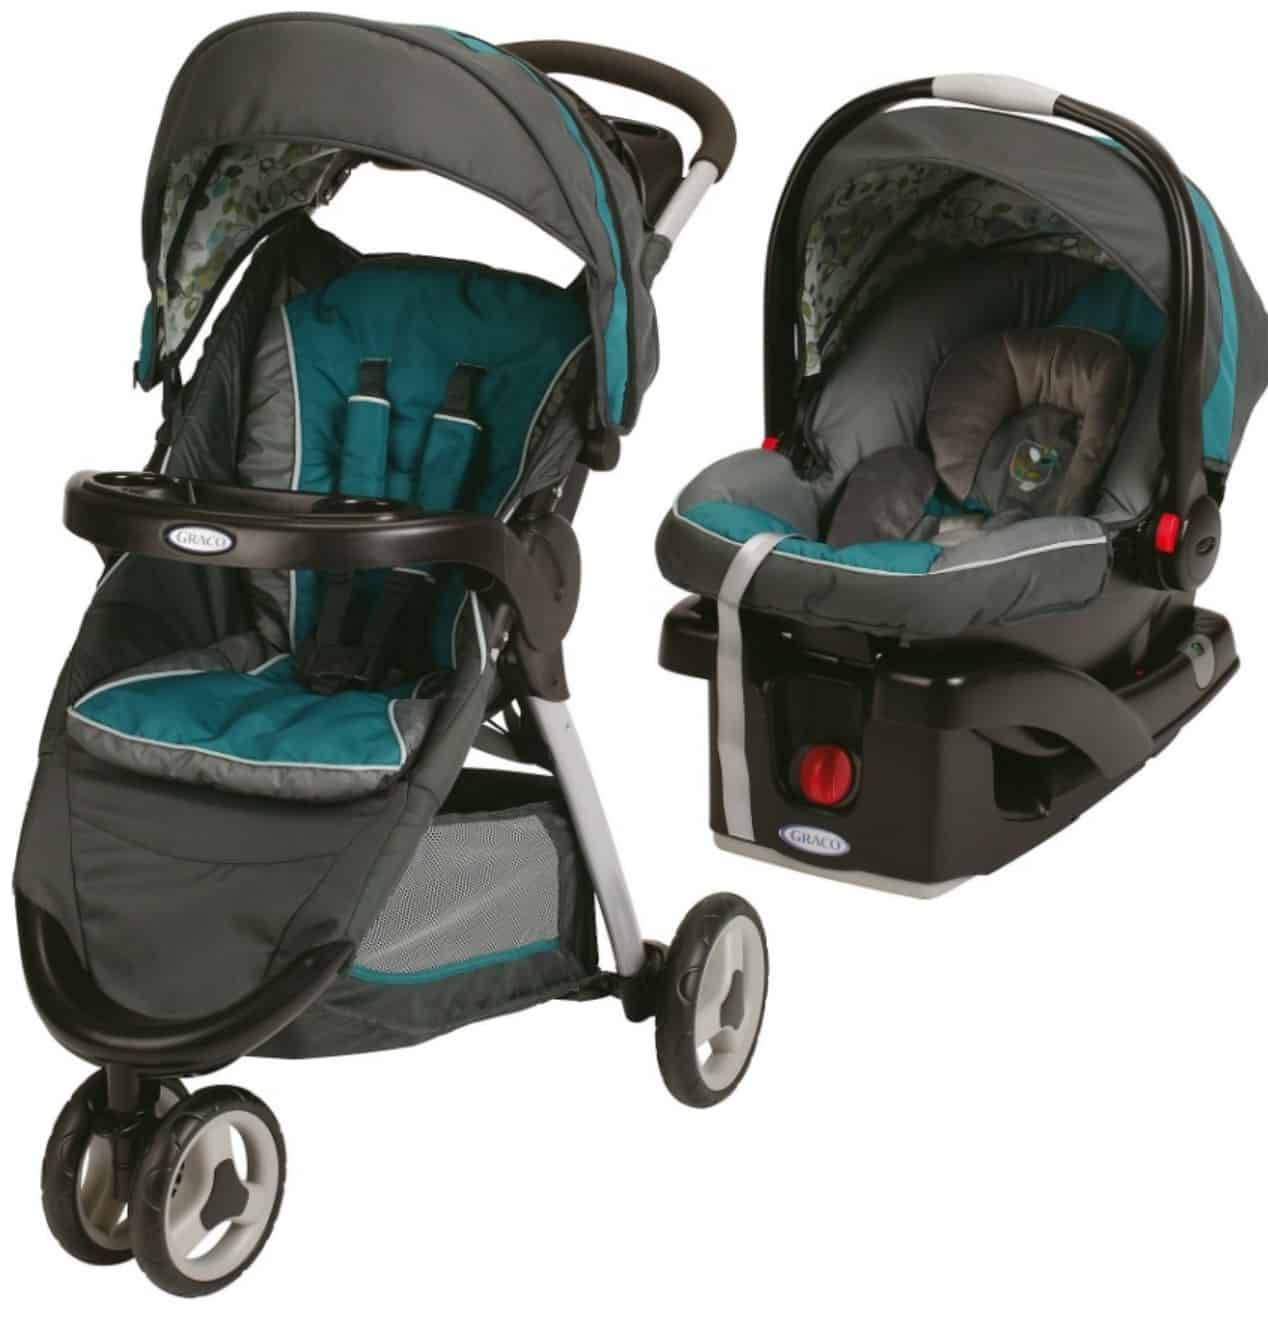 Great Graco Fastaction F Sport Snugride Click Connect Graco Fastaction F Sport Snugride Click Connect Travel System Graco Snugride Click Connect 35 Gotham Graco Snugride Click Connect 35 Infant Car Se baby Graco Snugride Click Connect 35